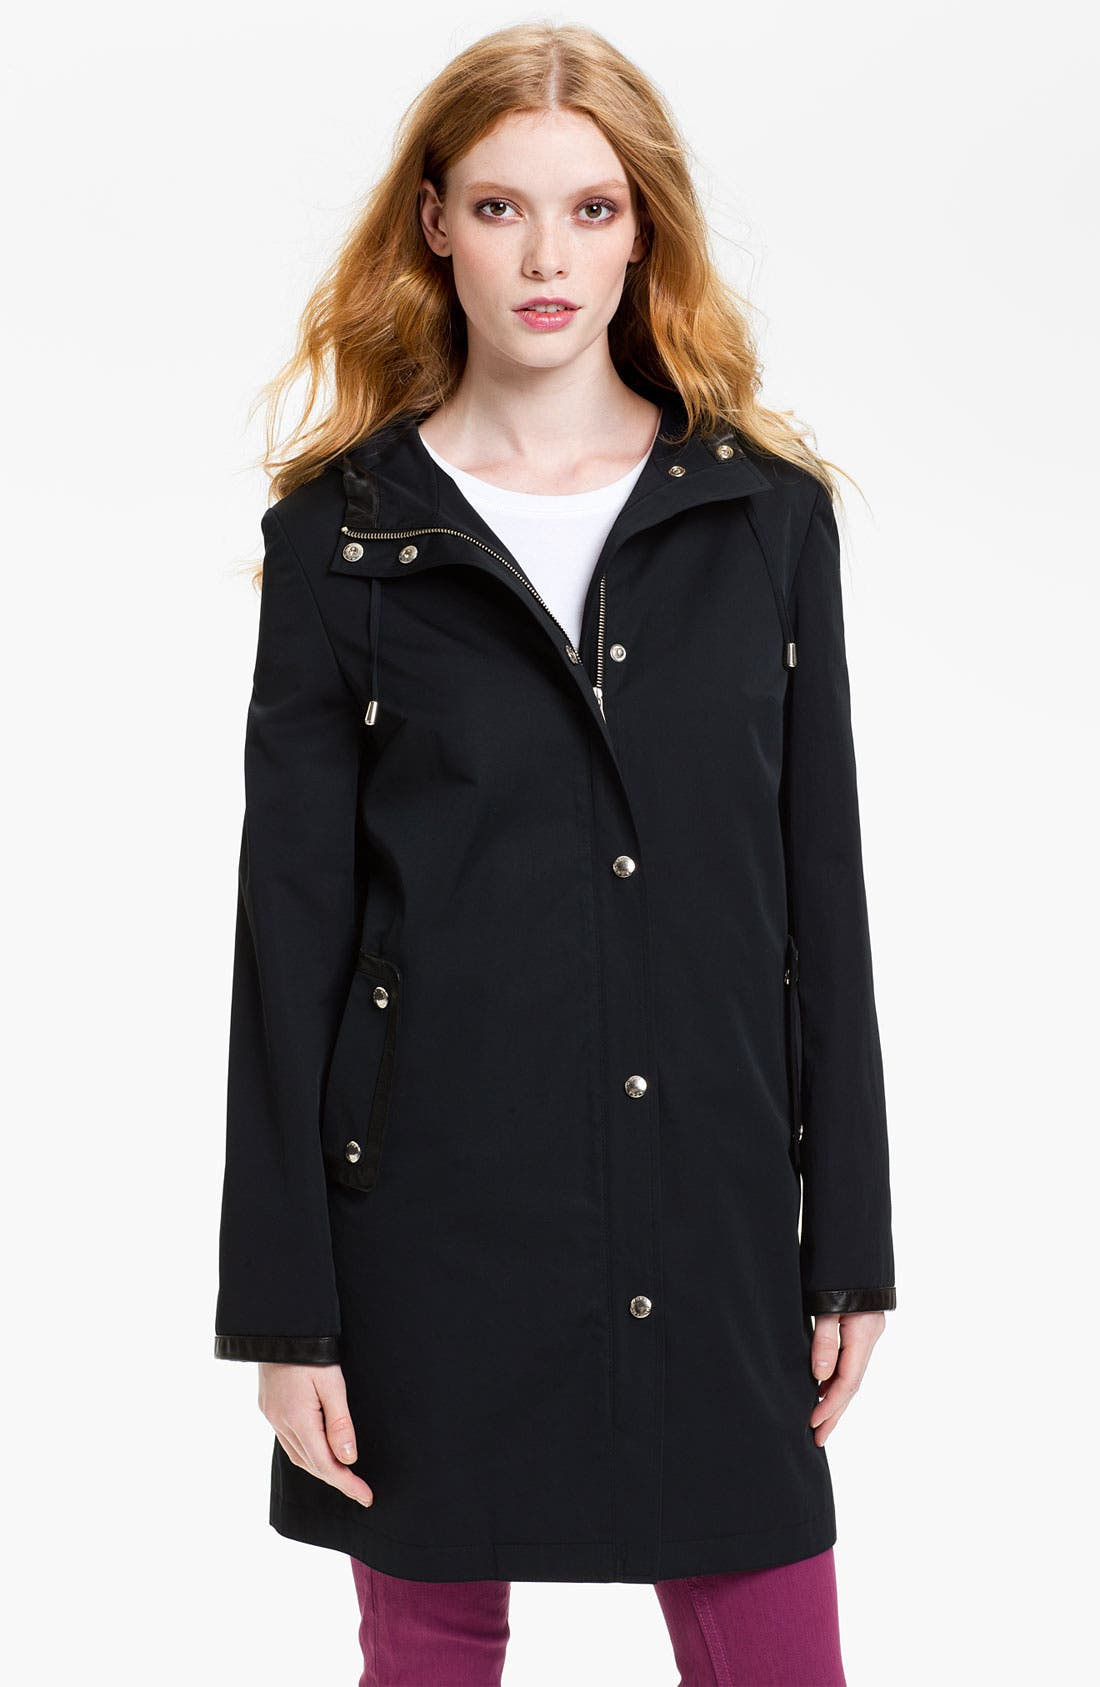 Alternate Image 1 Selected - MICHAEL Michael Kors Hooded Coat with Detachable Liner